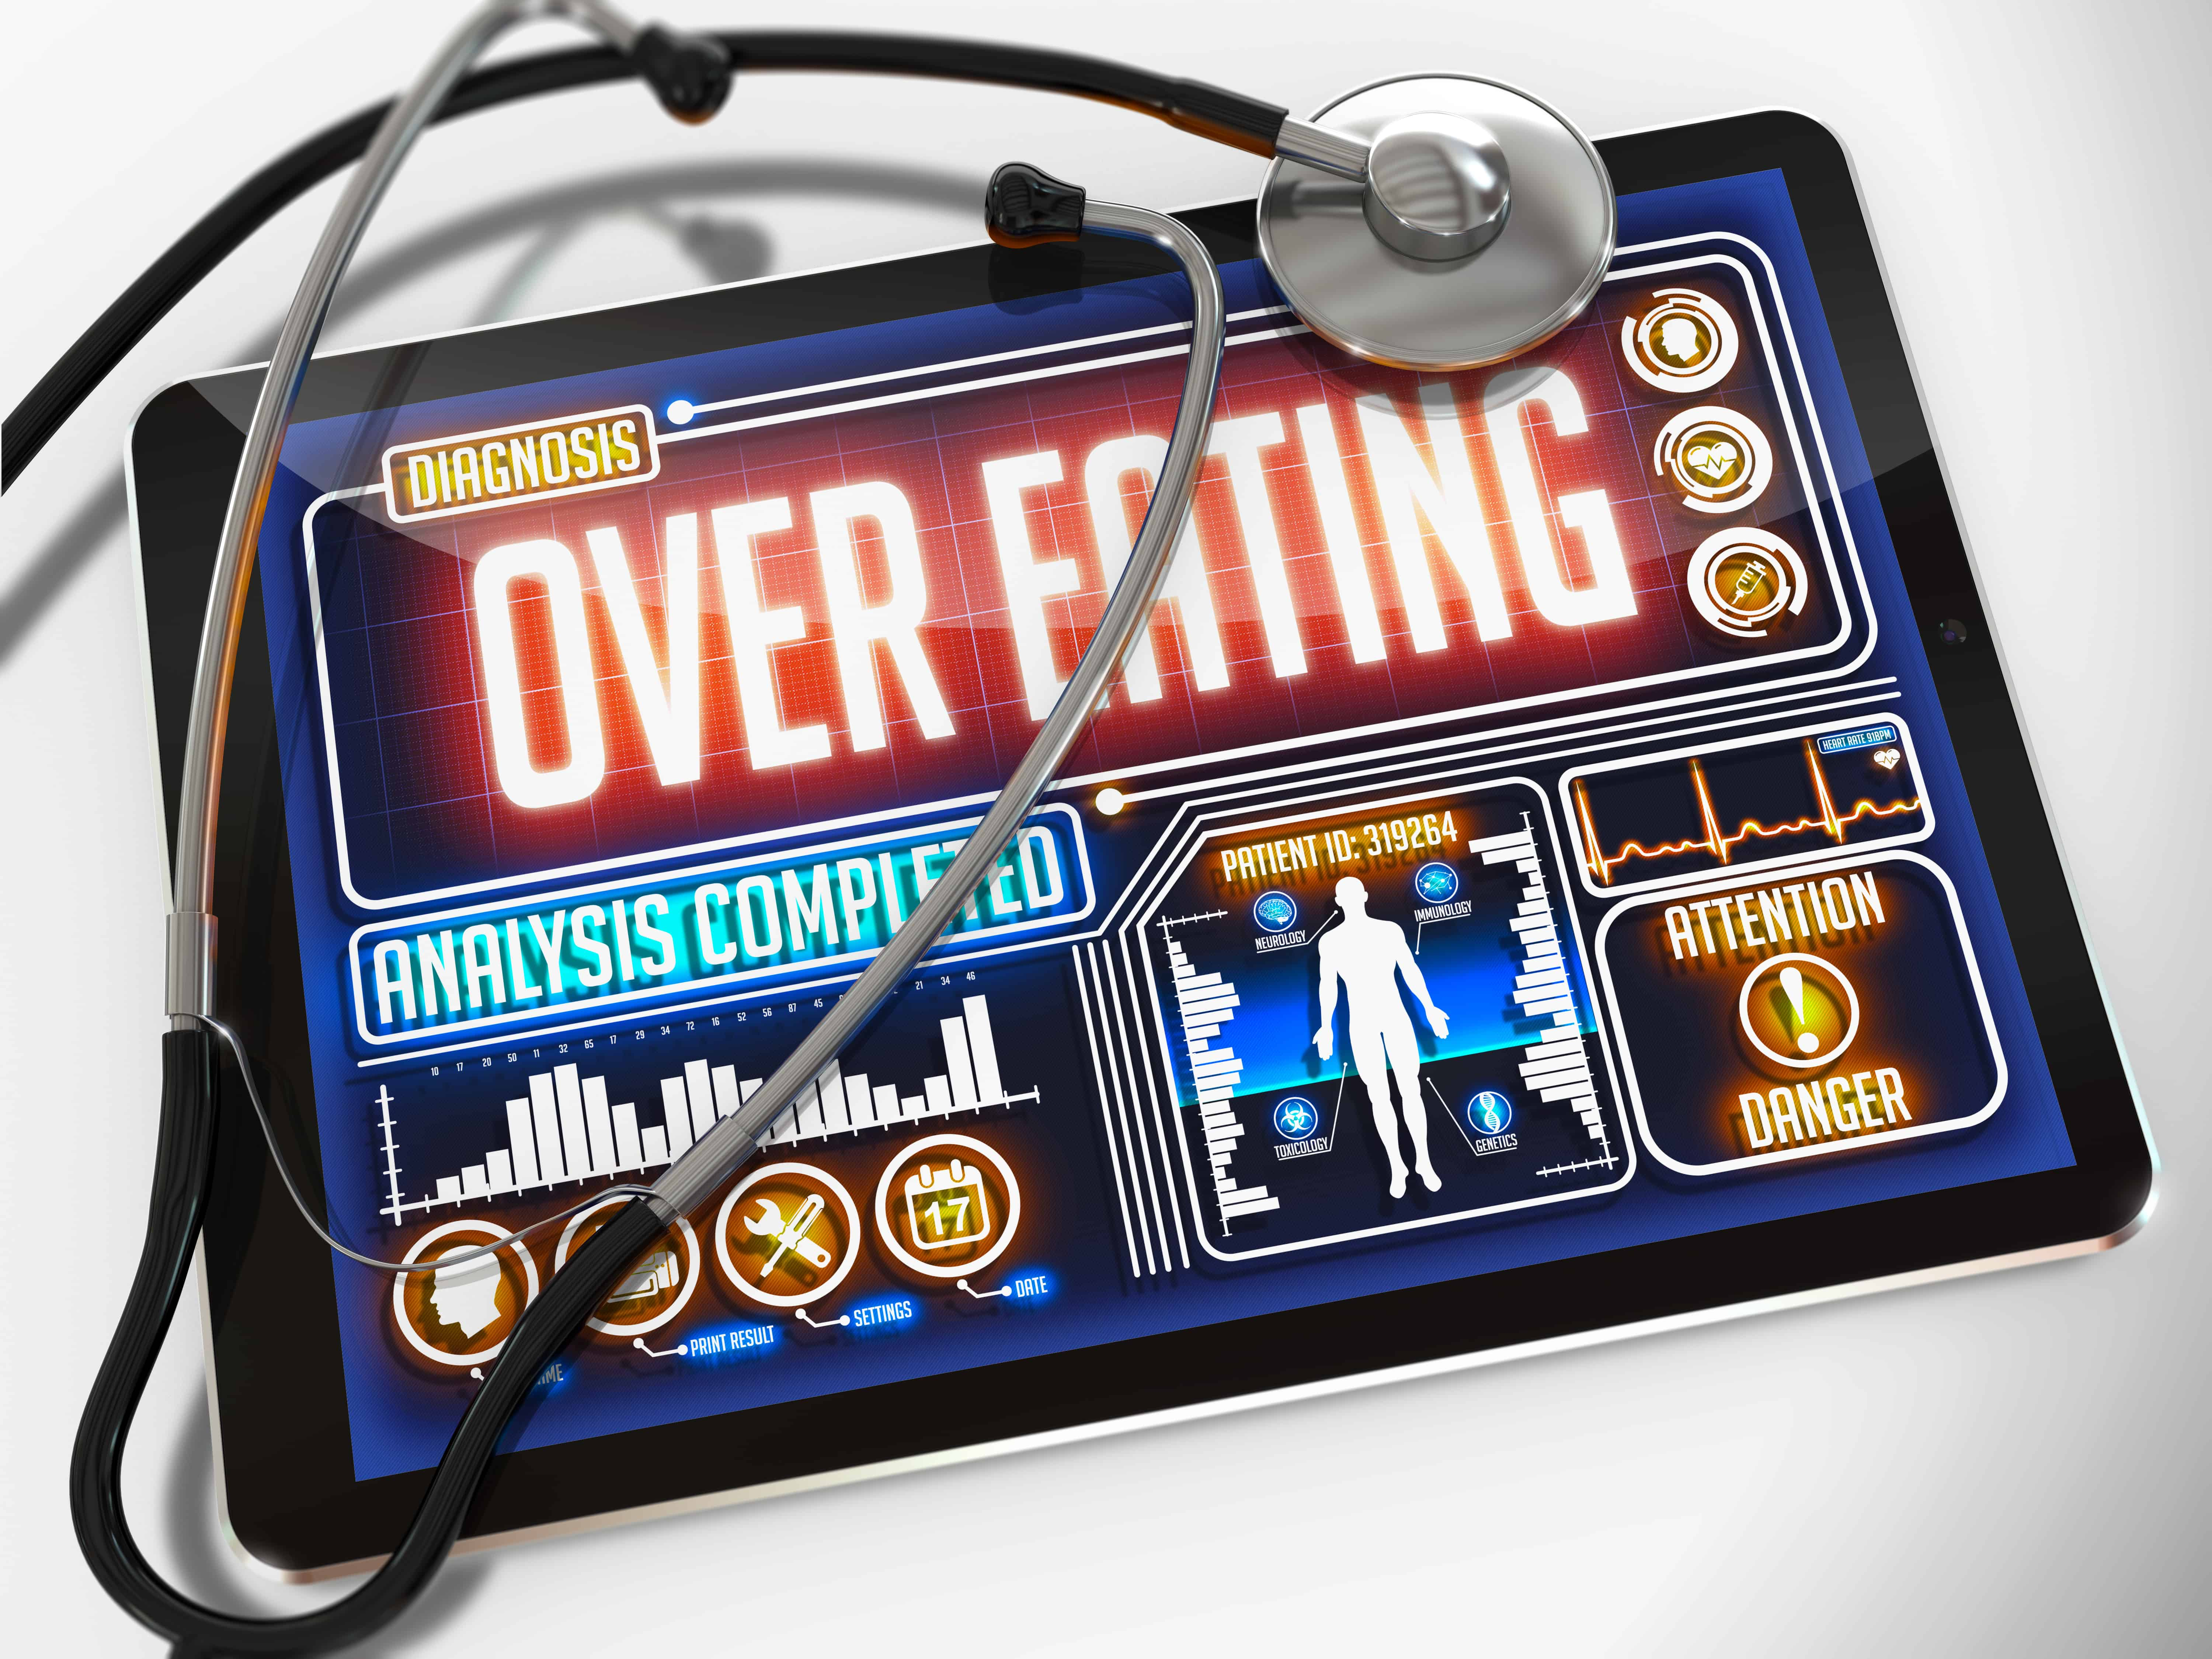 How to Deal With Overeating